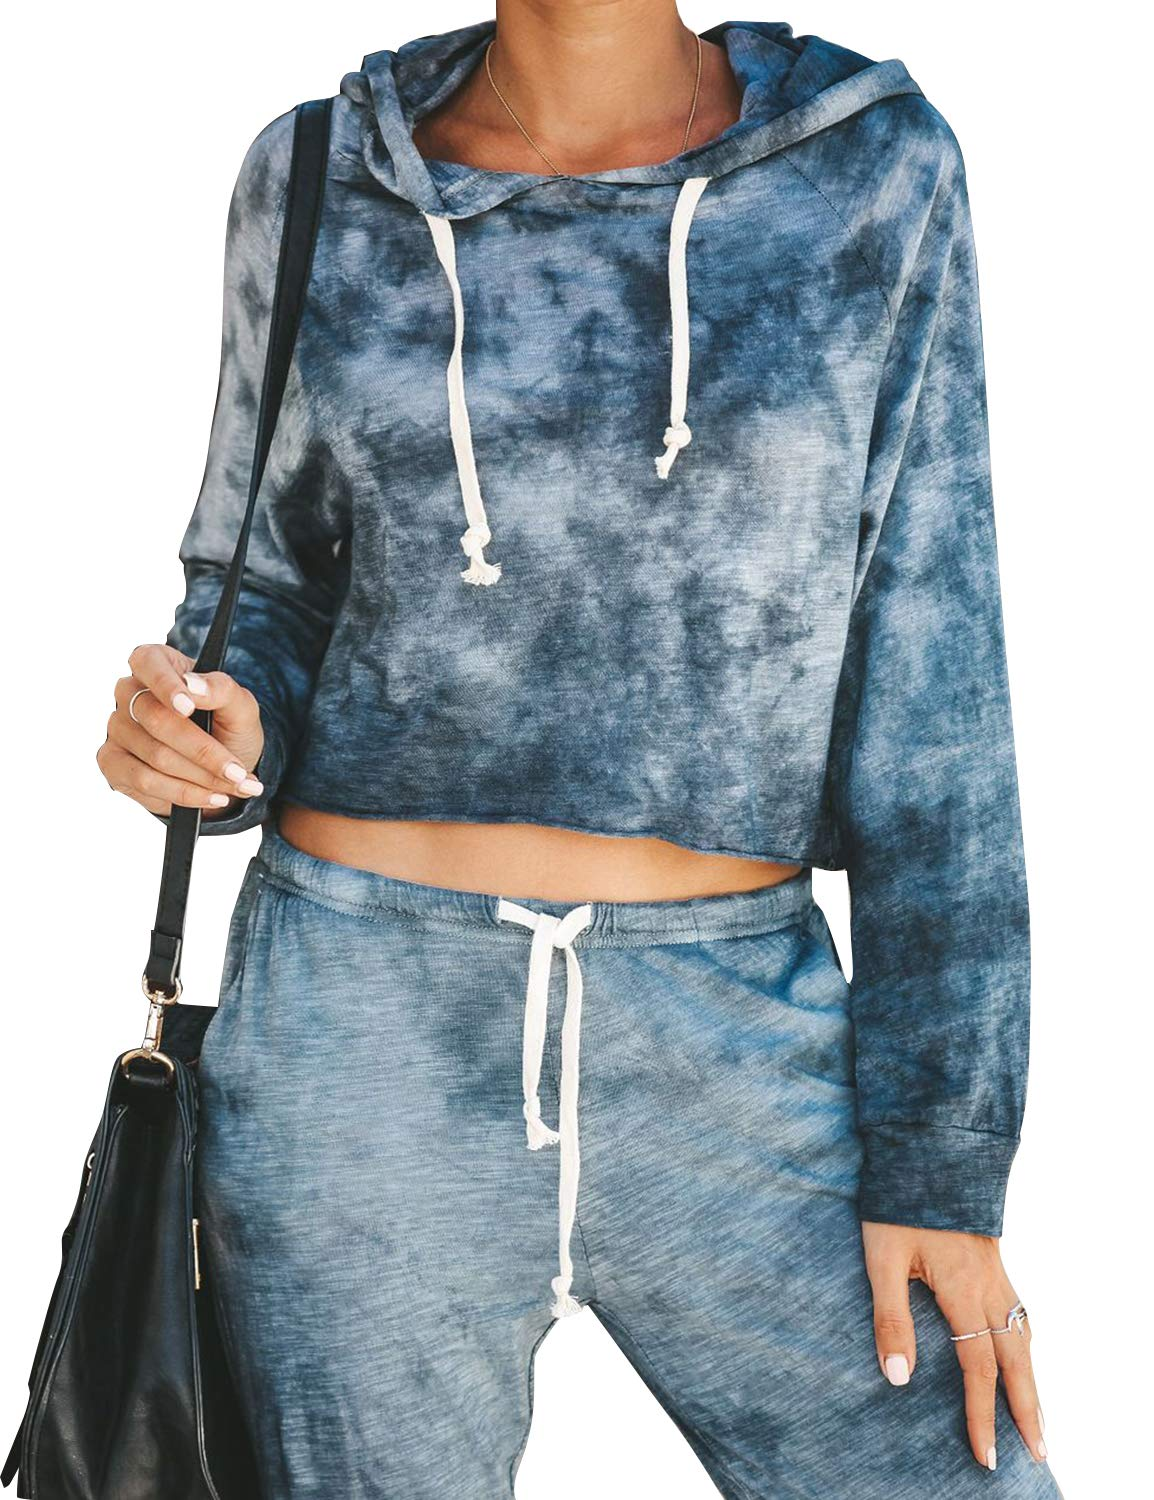 Blooming Jelly Womens Long Sleeve Tie Dye Top Pullover Sweatshirt Hoodies Blue